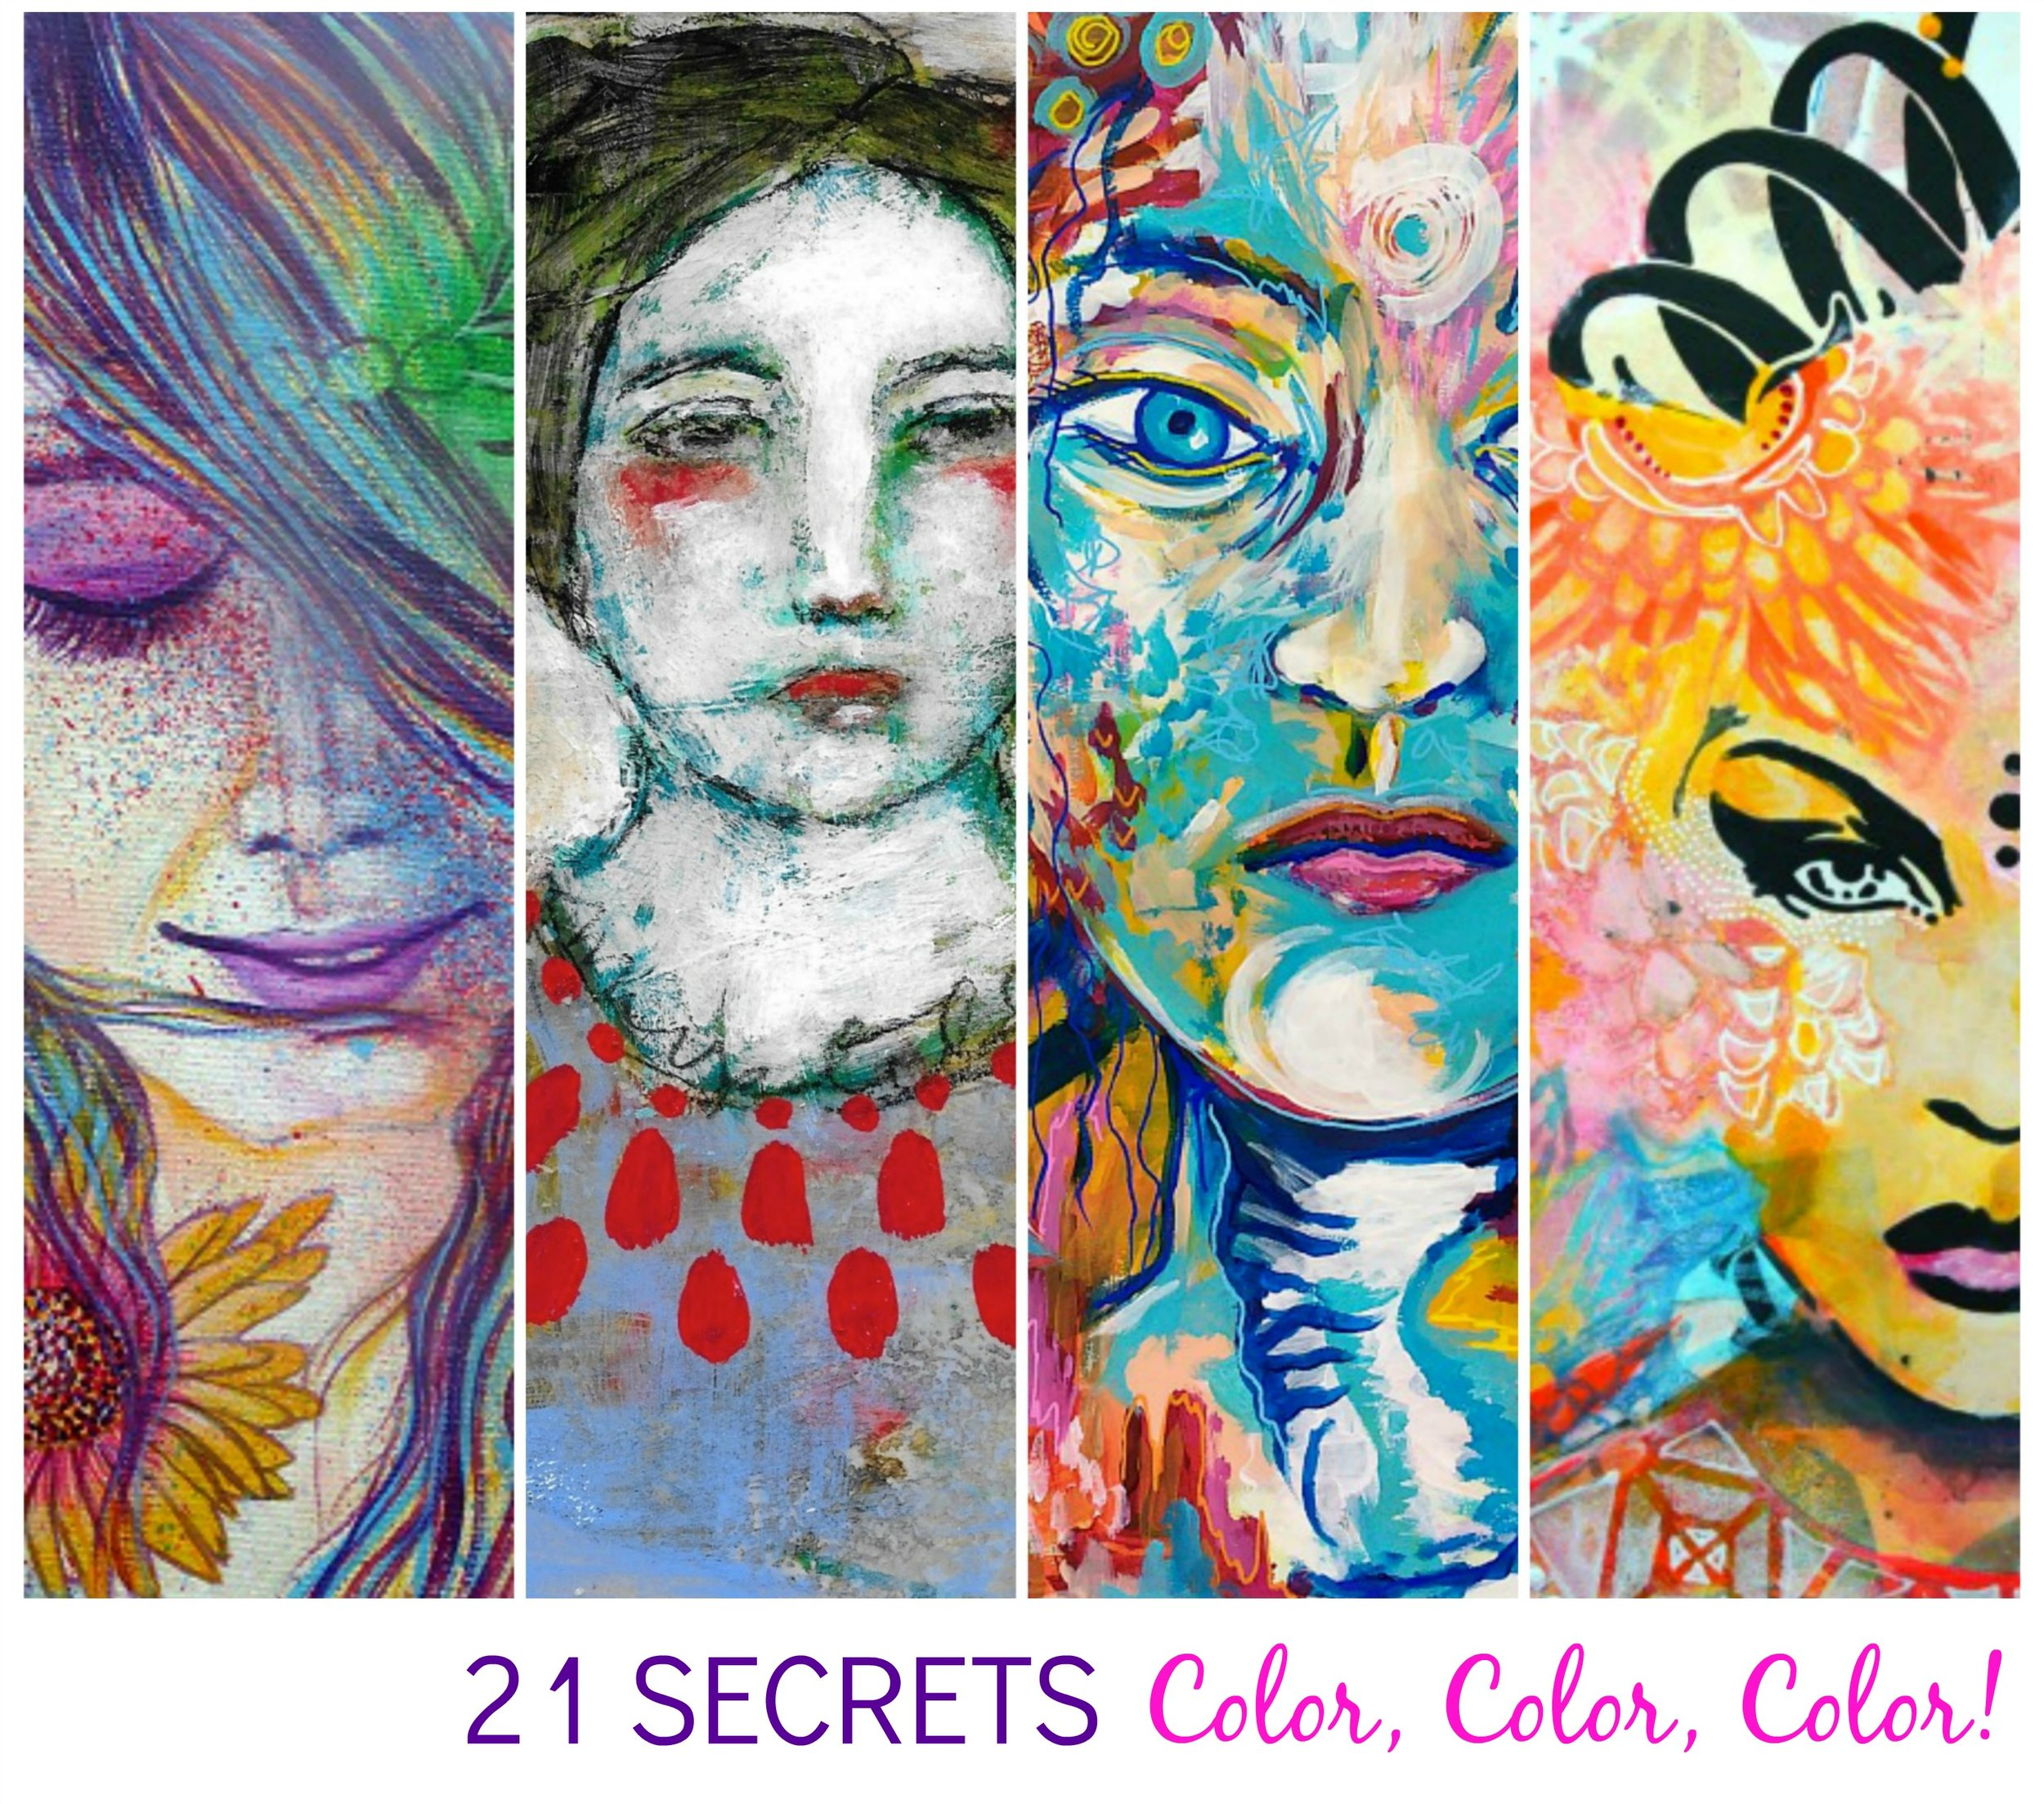 24 ways of exploring color, Color, COLOR! come art journal with us - 21 SECRETS Fall 2016 (I'm returning to teaching in this one!)